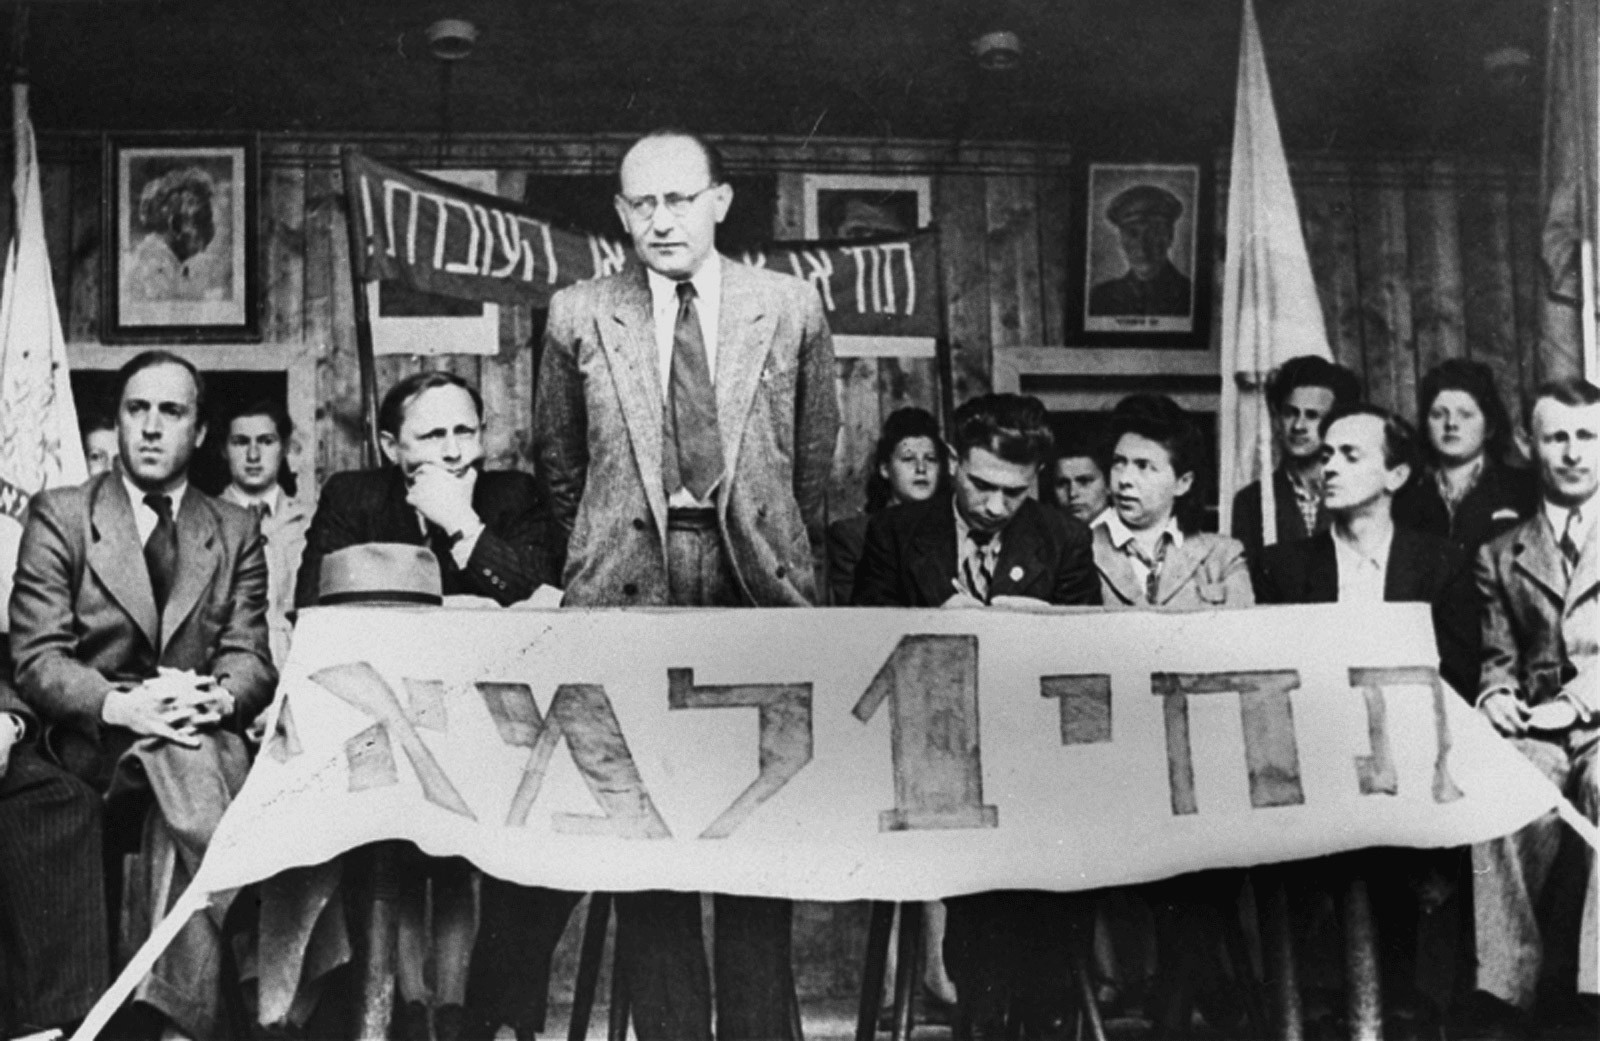 "May 1st, holiday of the working class: Chaim Yahil as emissary of the Jewish Agency with survivors of Nazi persecution (""Displaced Persons"") in the DP Camp of München-Neu-Freimann (1946 / 1948).  The Jewish Agency organized Jewish immigration to Palestine.  Photo: Jack Sutin / United States Holocaust Memorial Museum, courtesy of Saul Sorrin. der NS-Verfolgung (""Displaced Persons"") im DP-Camp München-Neu-Freimann (1946 / 1948). Die Jewish Agency organisierte die Einwanderung nach Palästina.  Foto: Jack Sutin / United States Holocaust Memorial Museum, courtesy of Saul Sorrin"